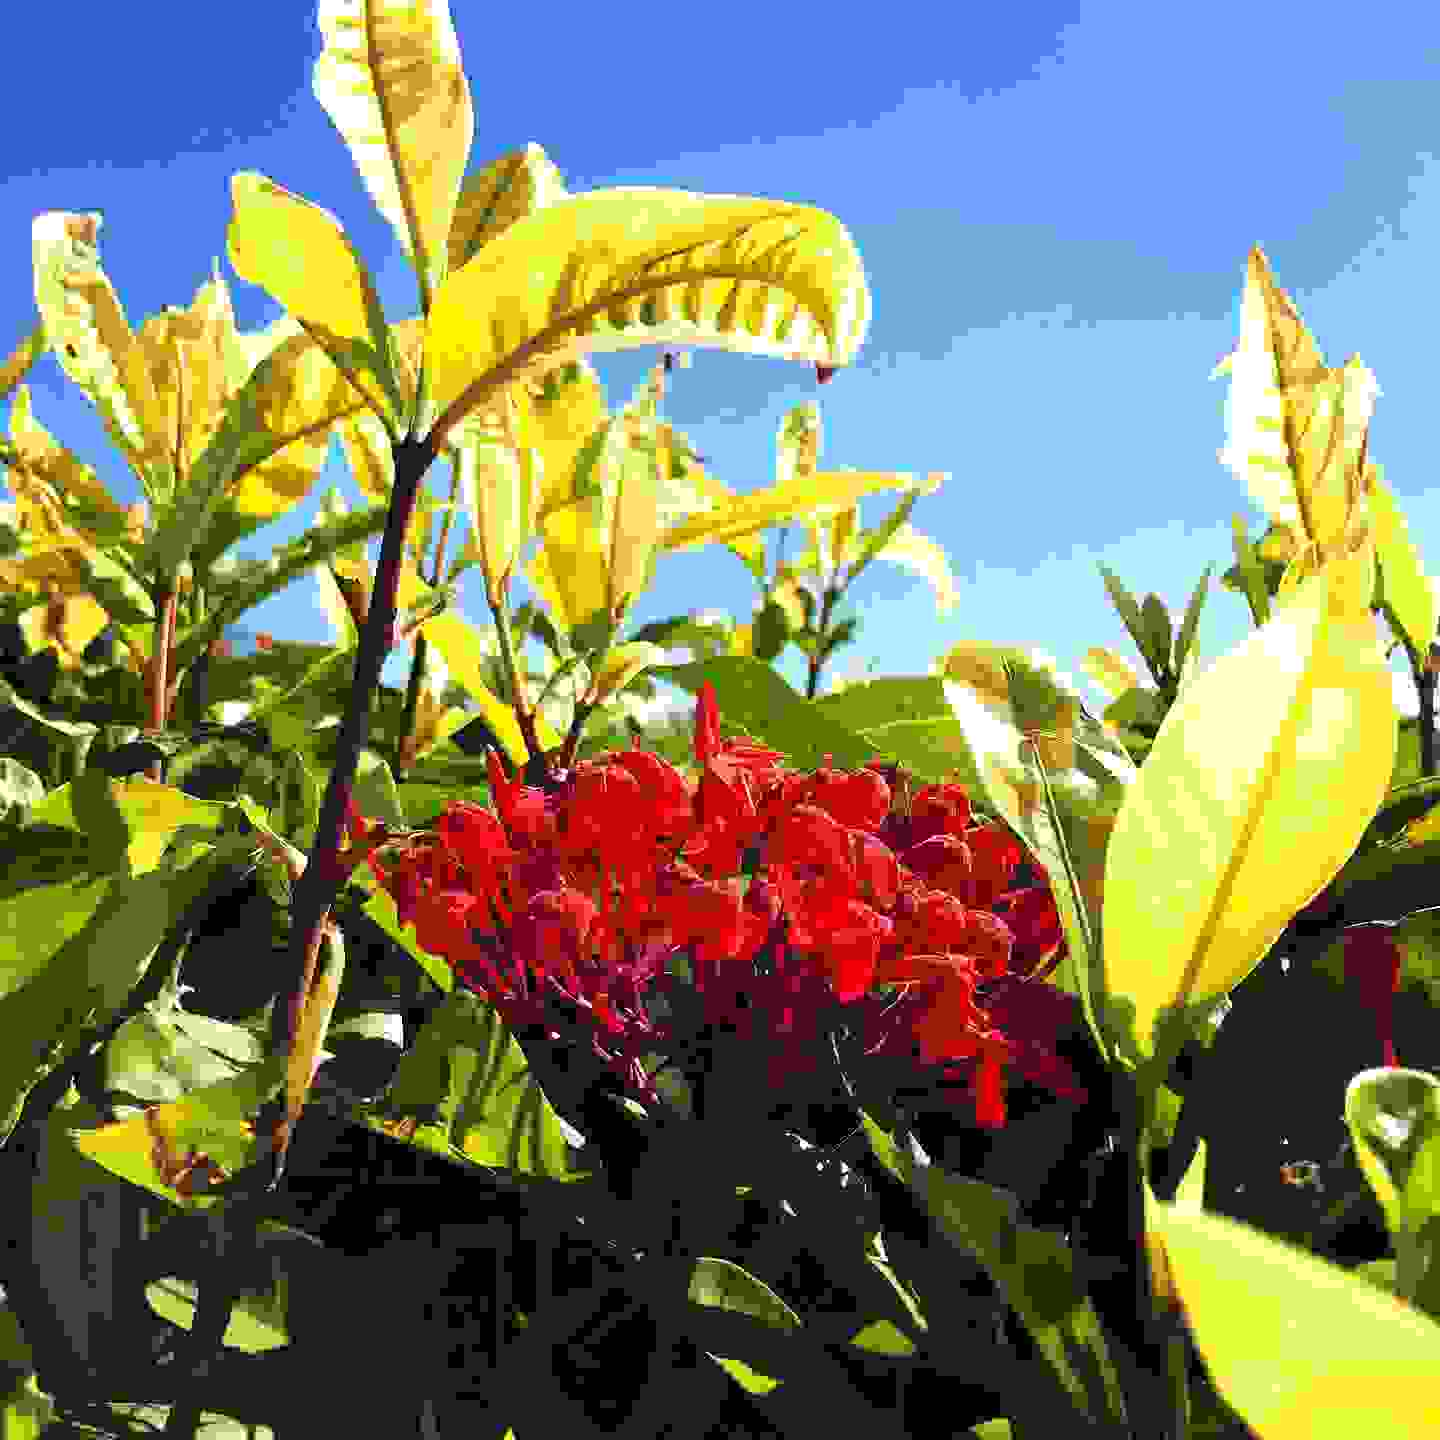 Flowers and leaves against blue sky - book now